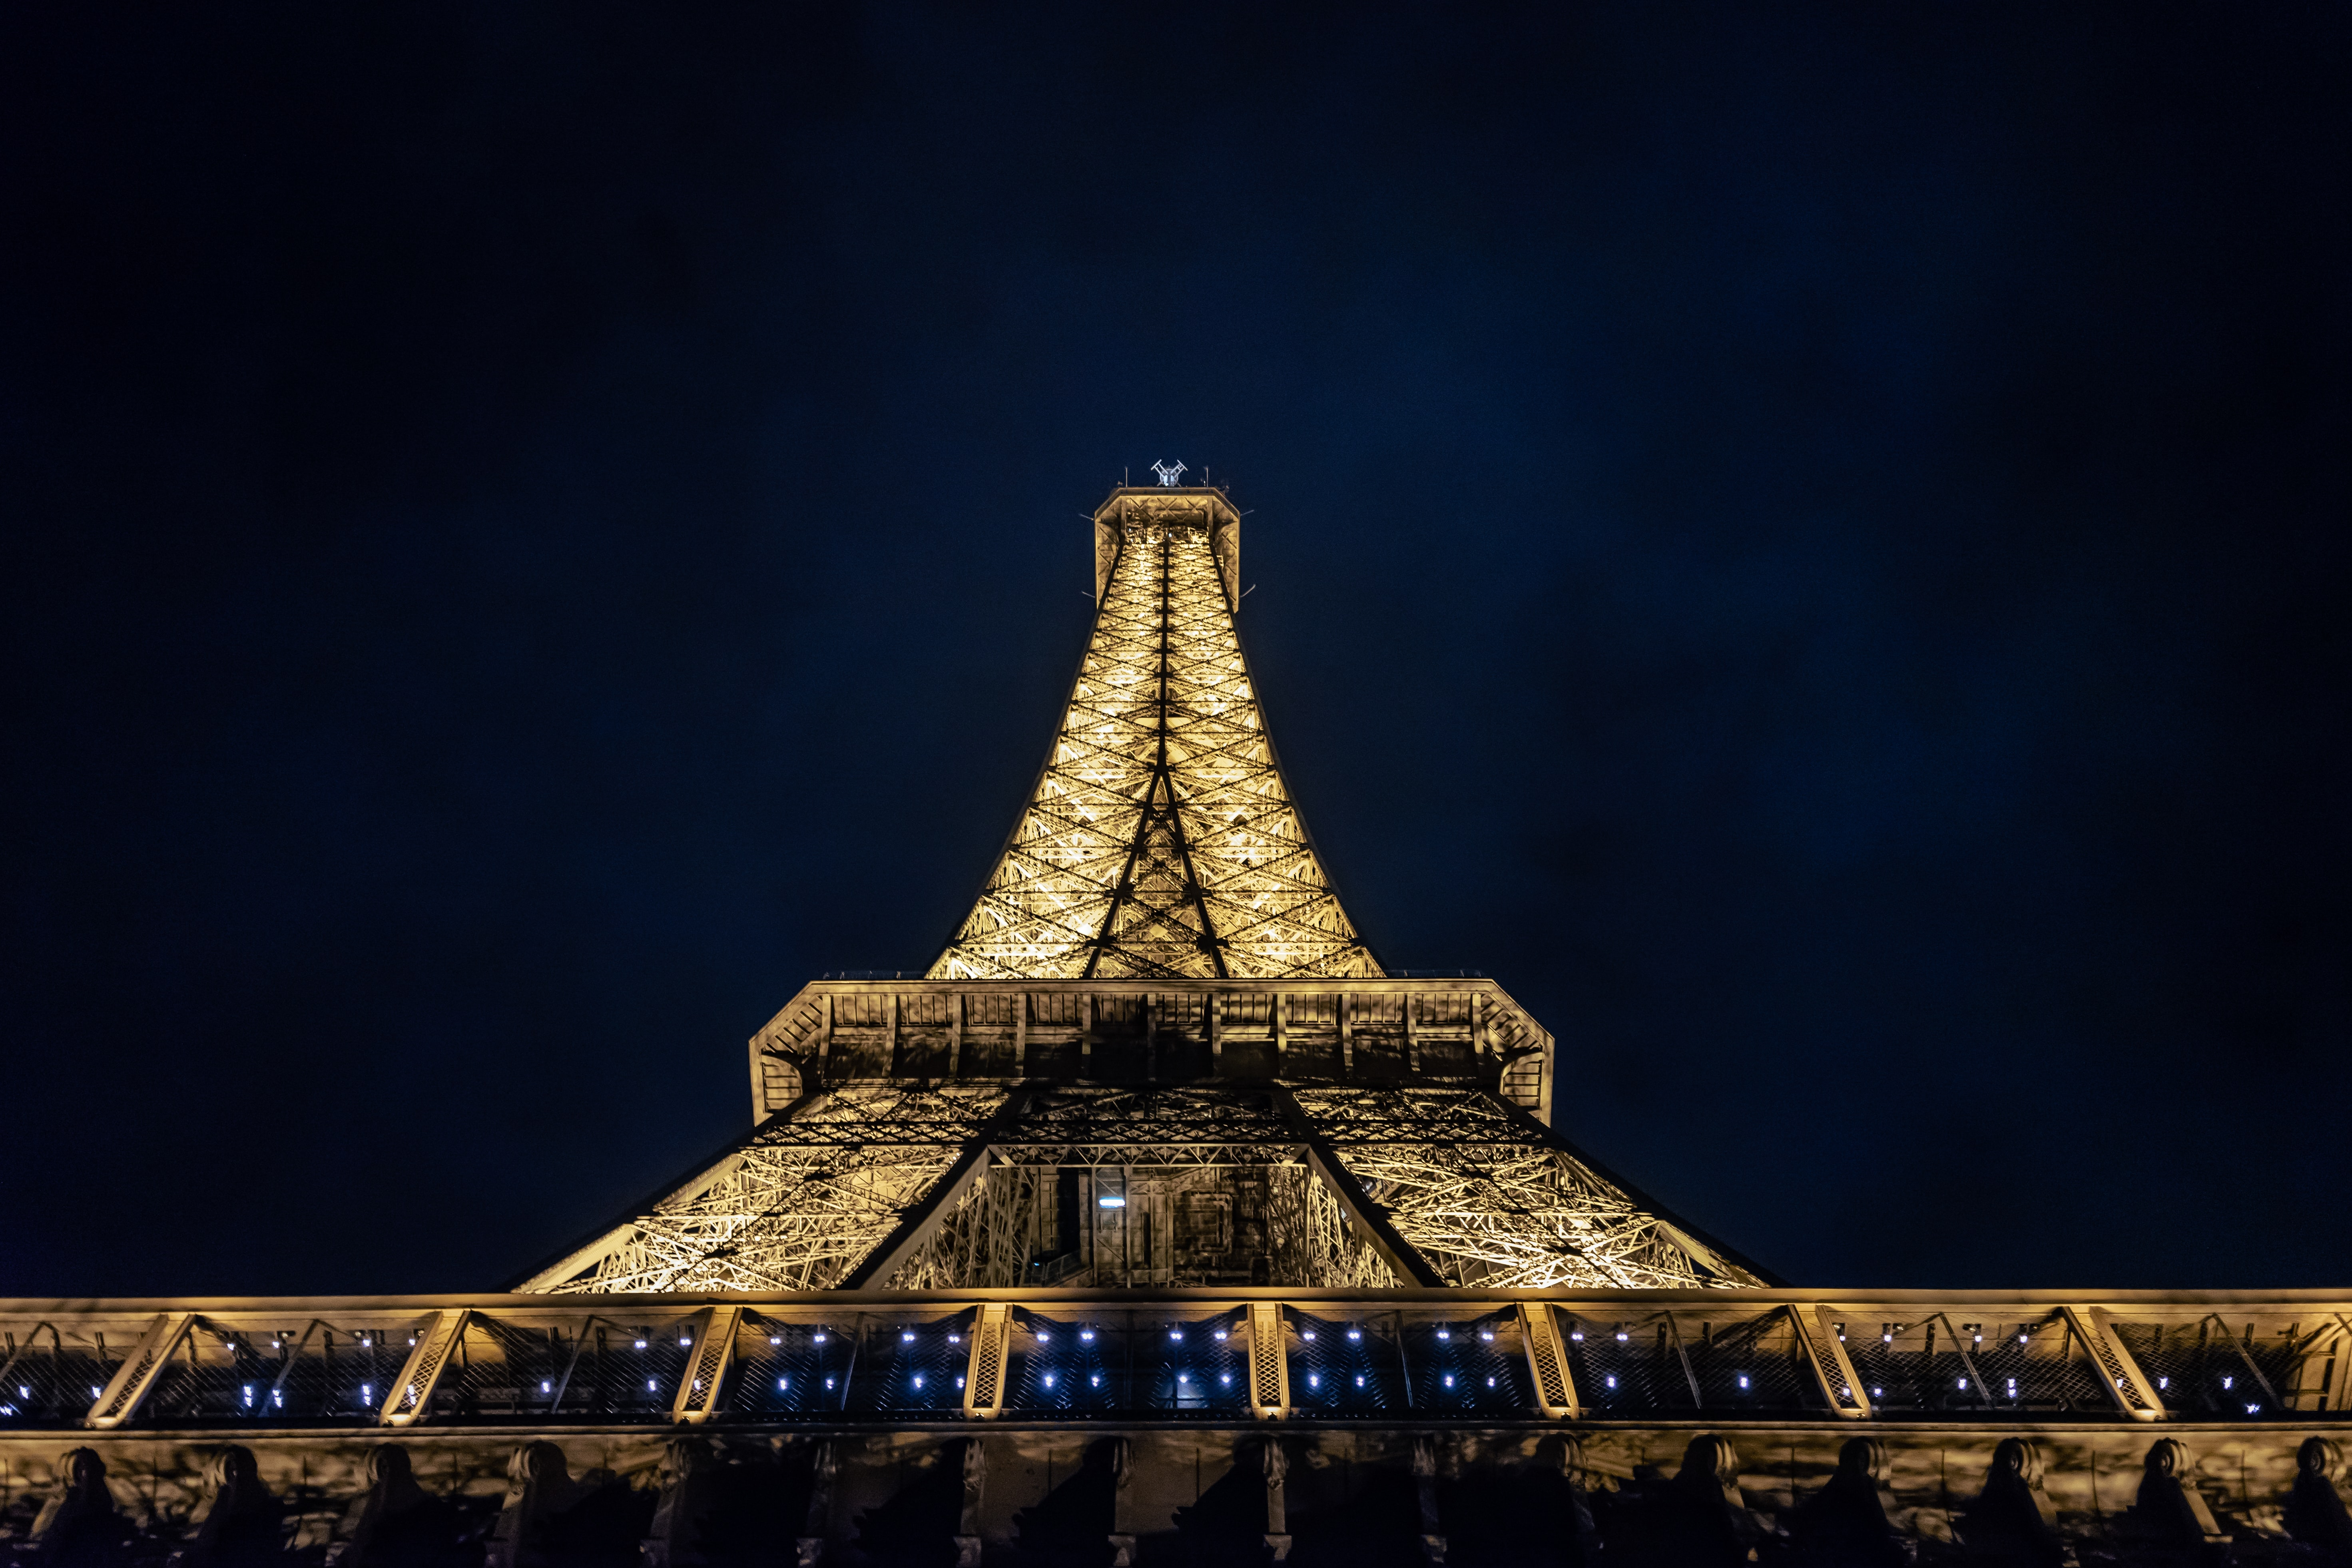 low angle photography of Eiffel tower during nighttime